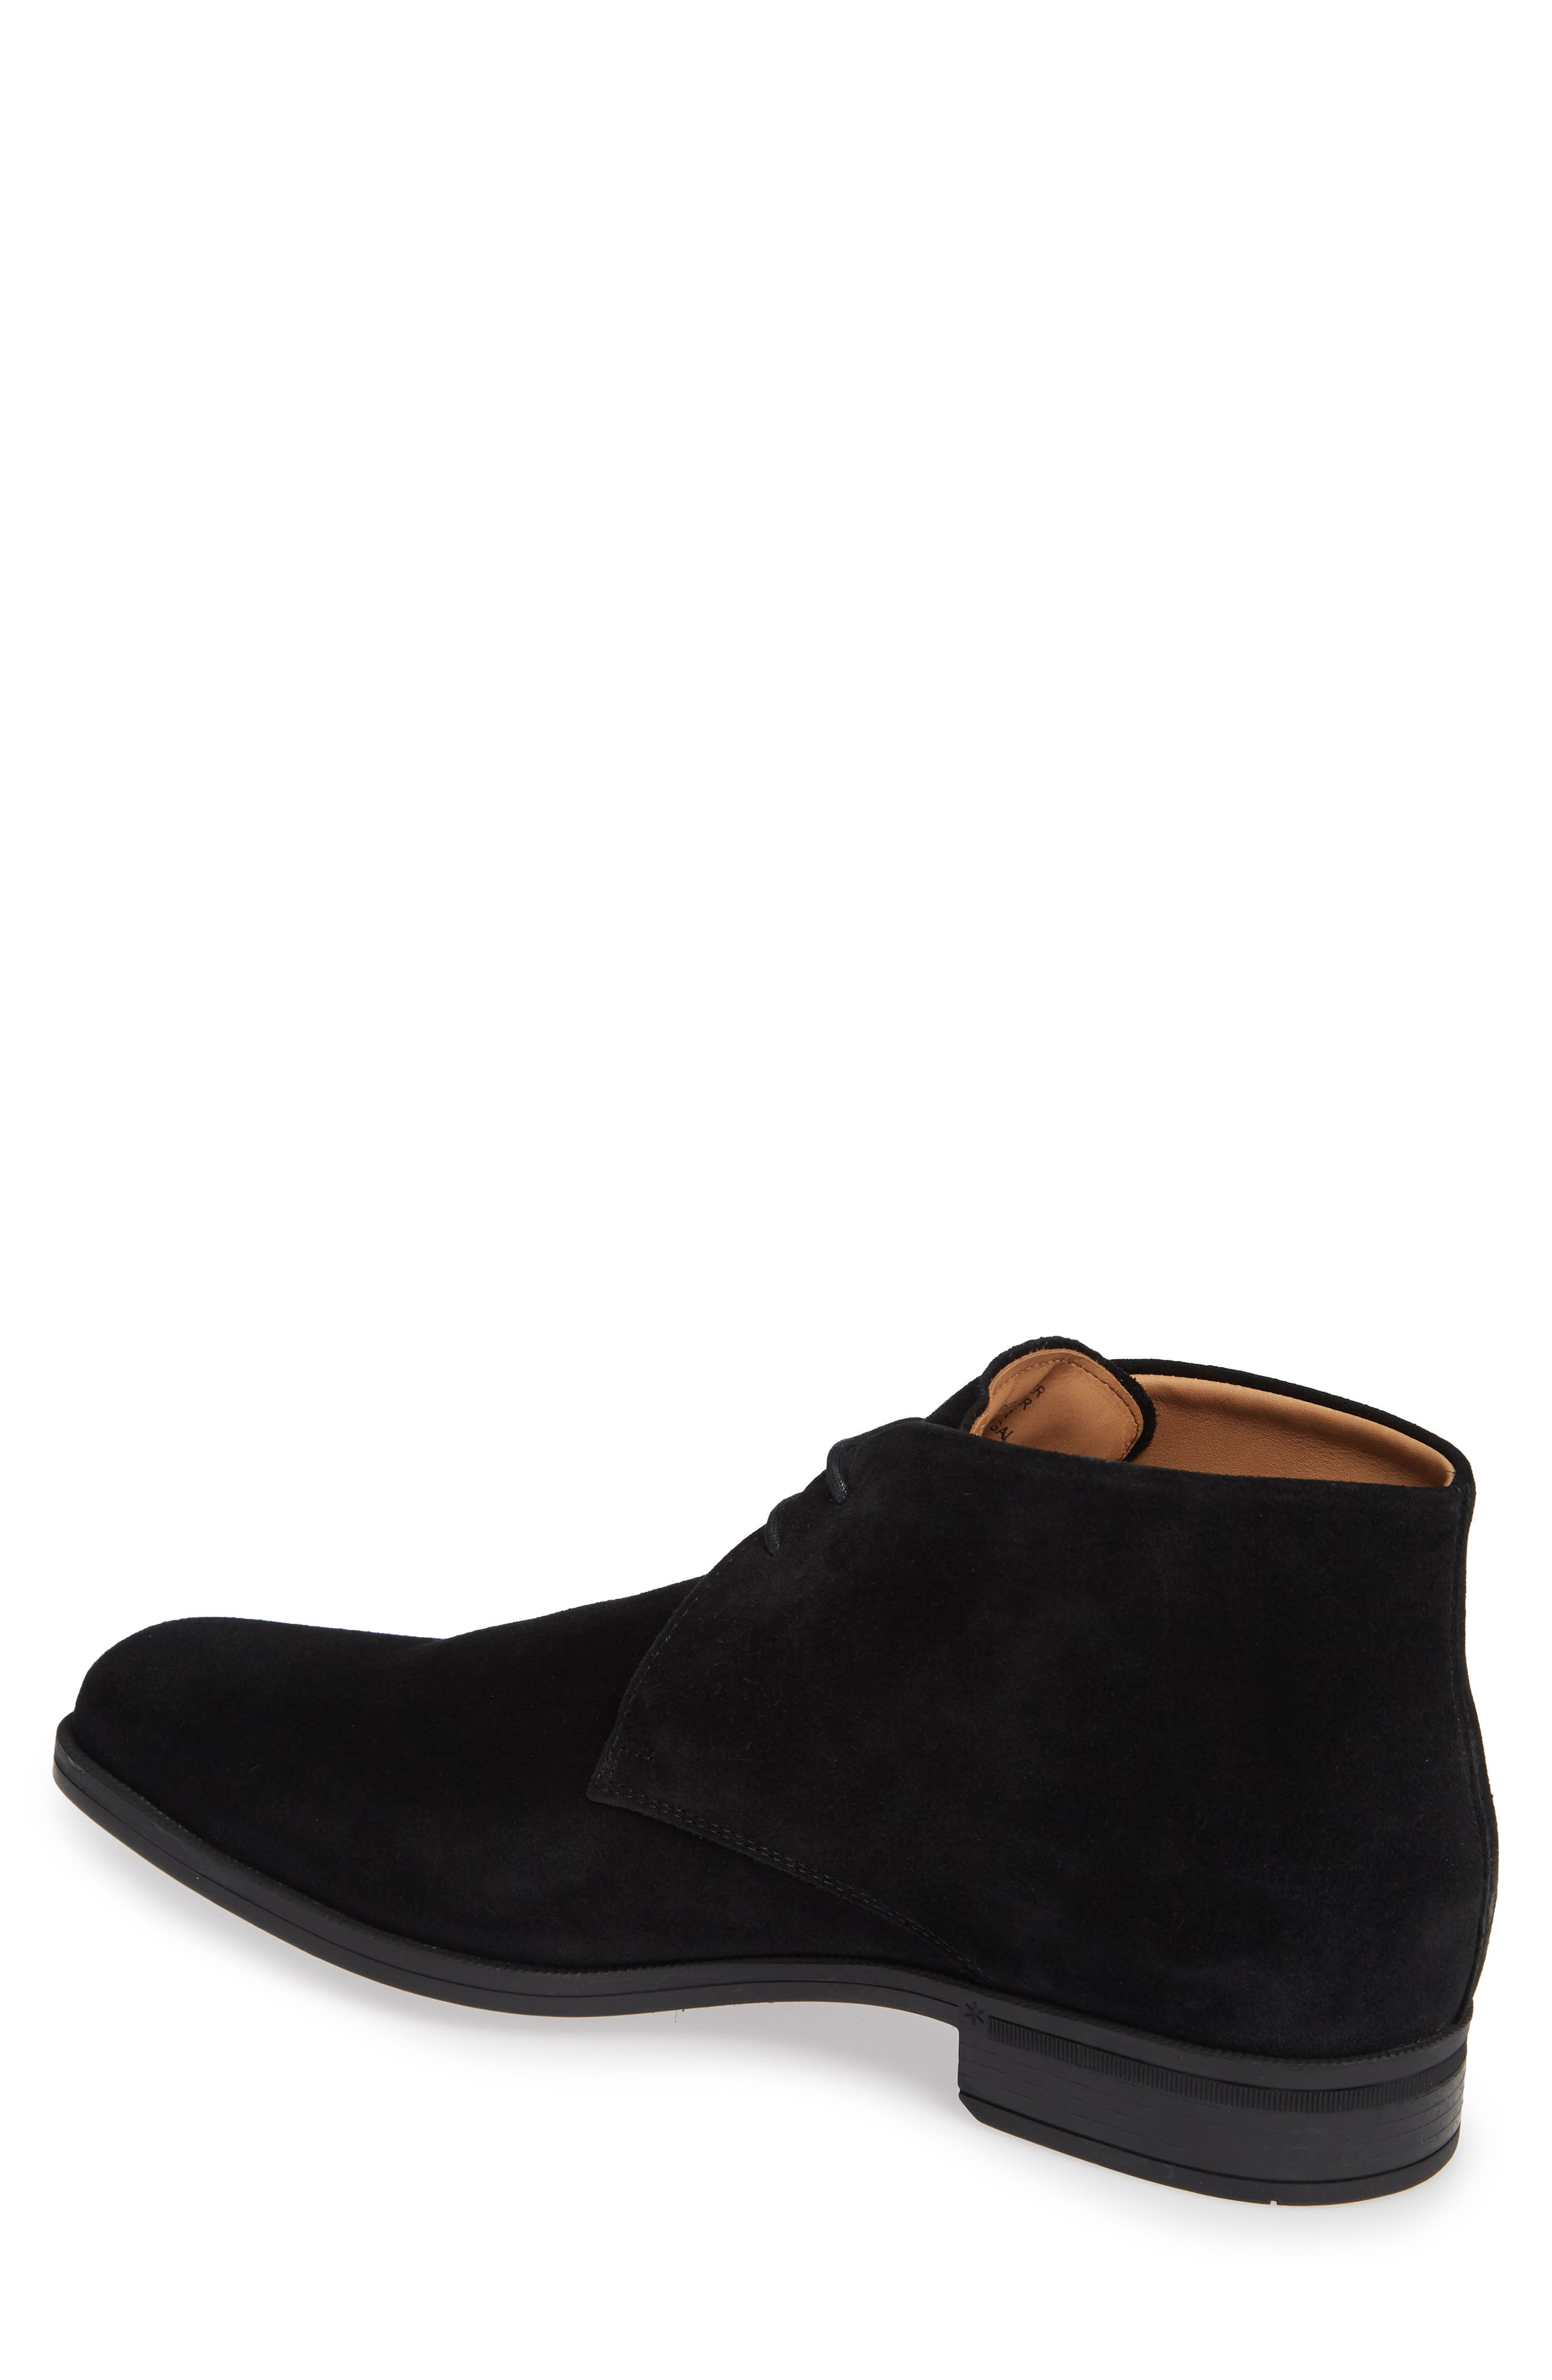 VINCE CAMUTO, Iden Chukka Boot, Alternate thumbnail 2, color, BLACK SUEDE